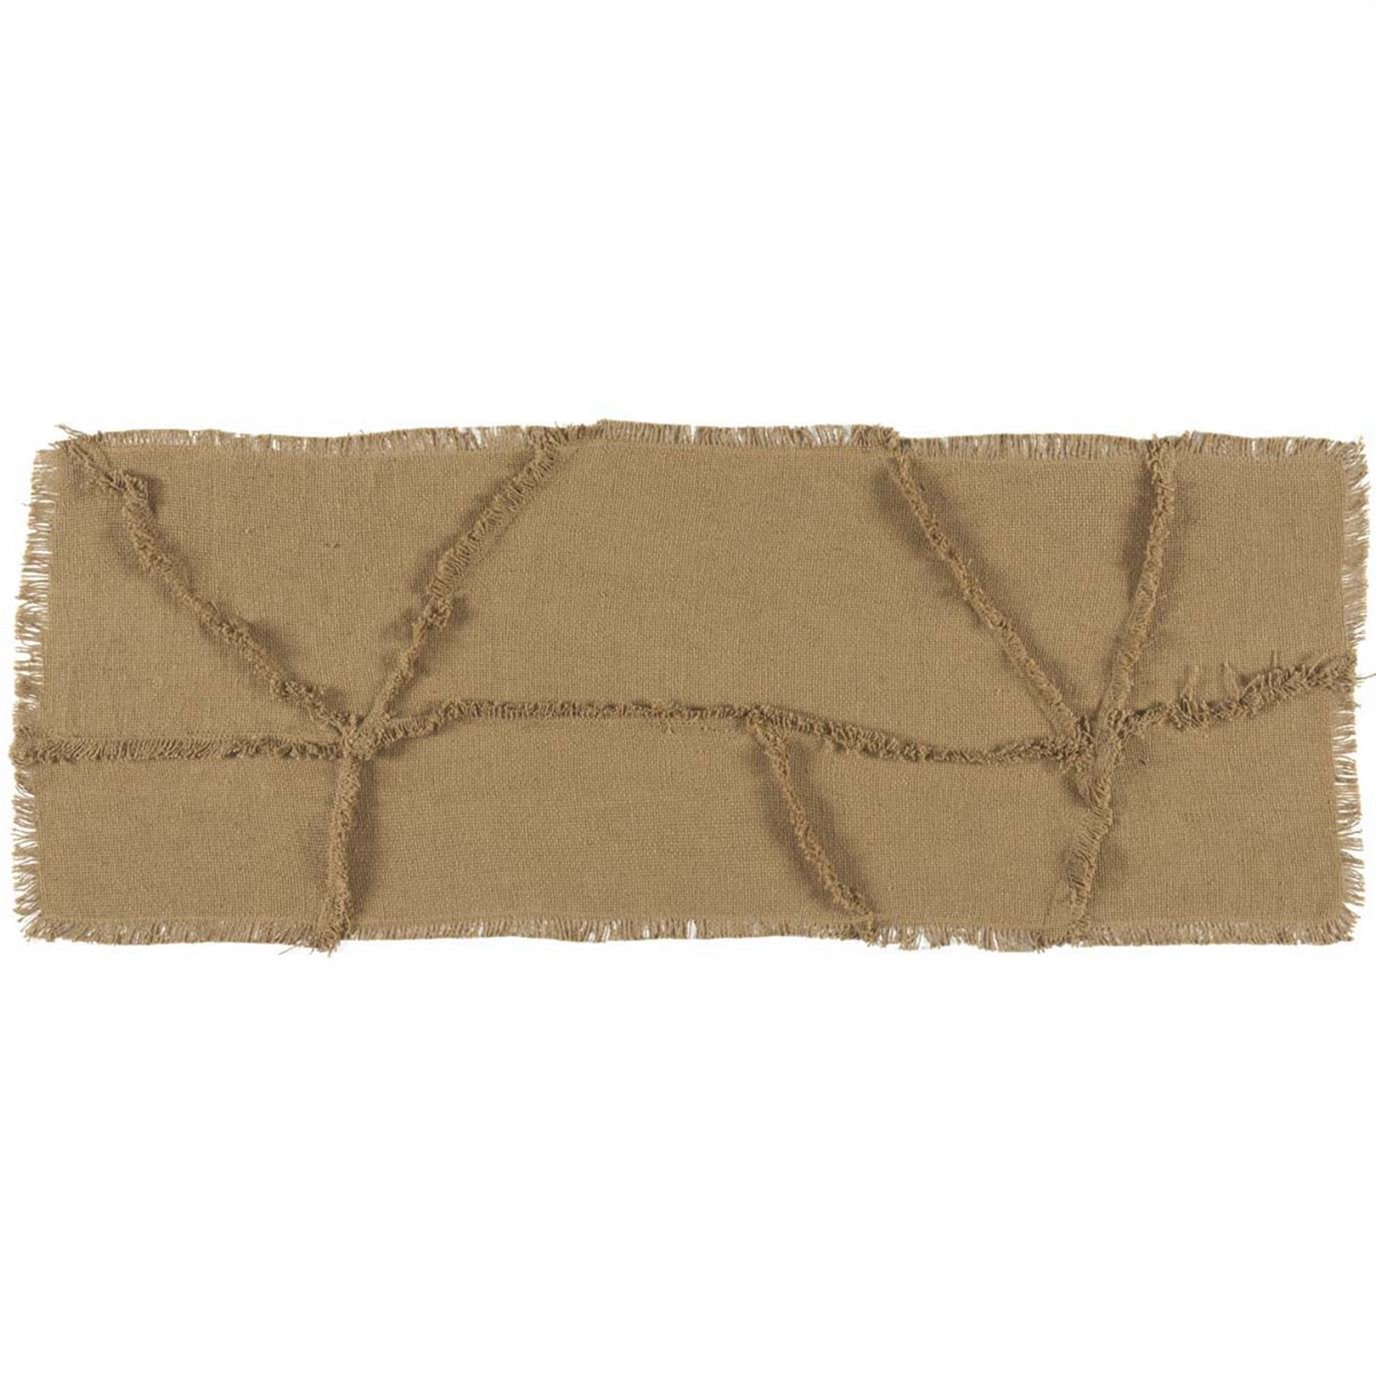 Burlap Natural Reverse Seam Patch Runner 13x36